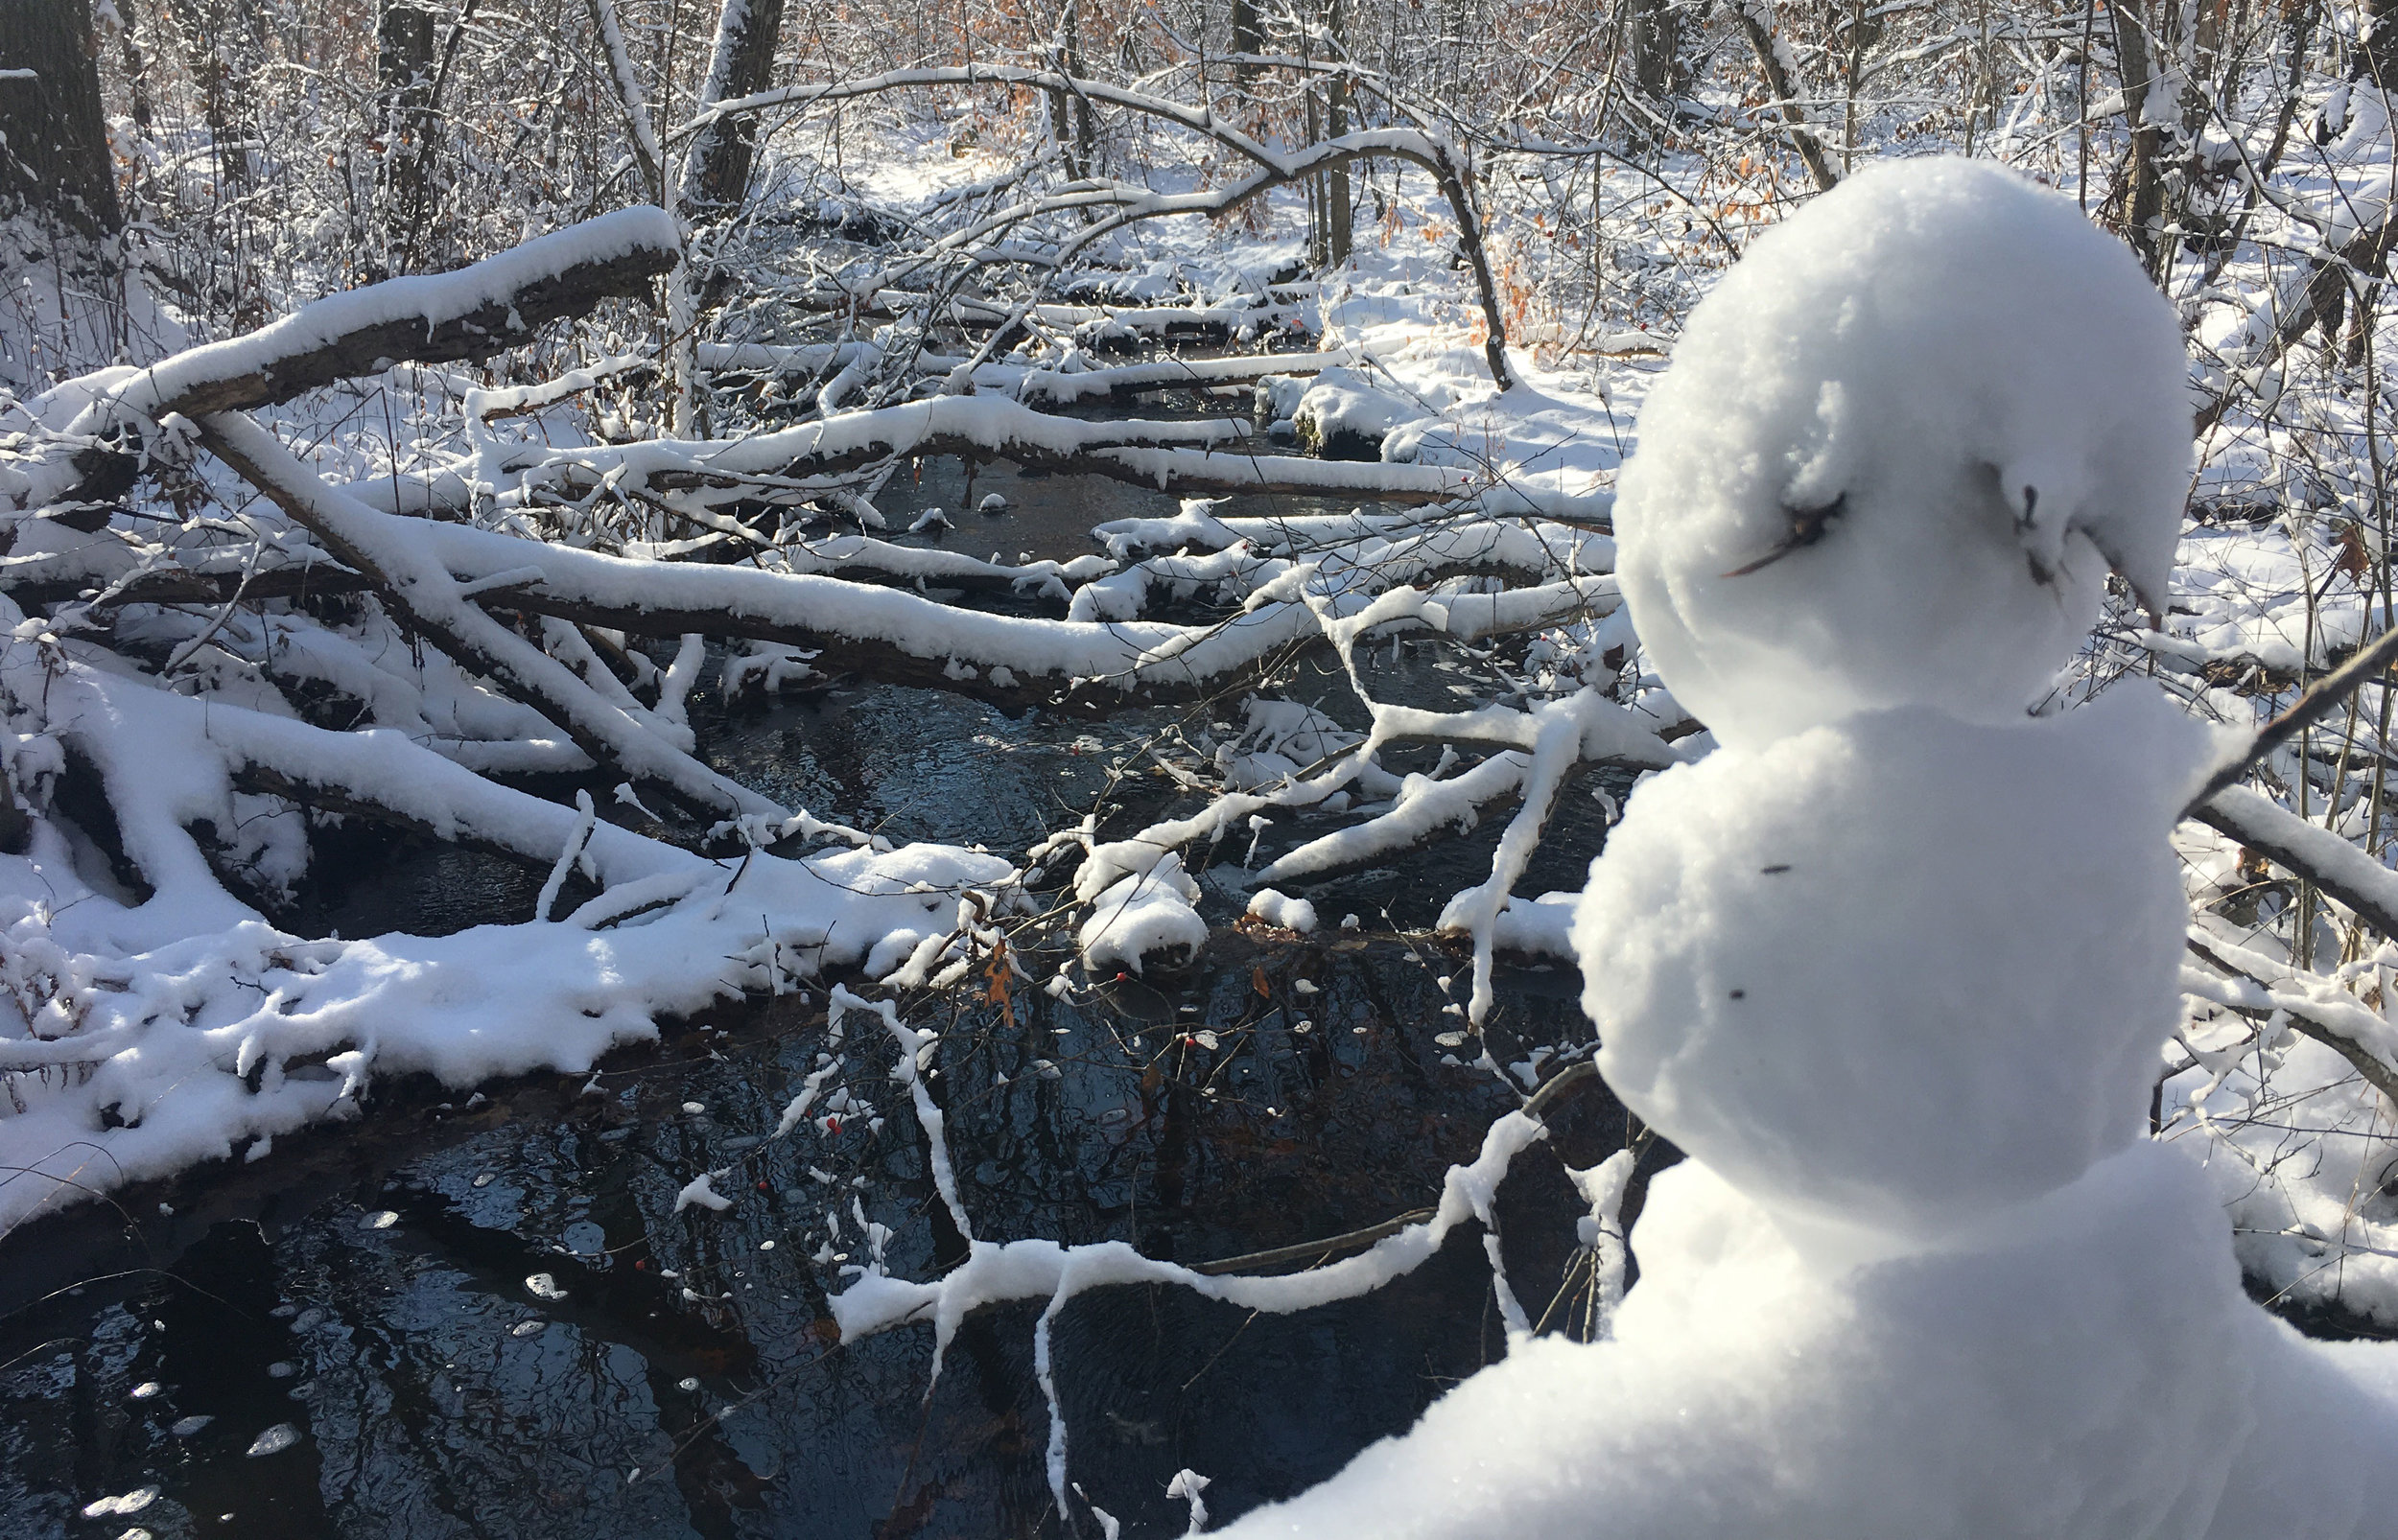 Another snowman keeping watch on the brook.